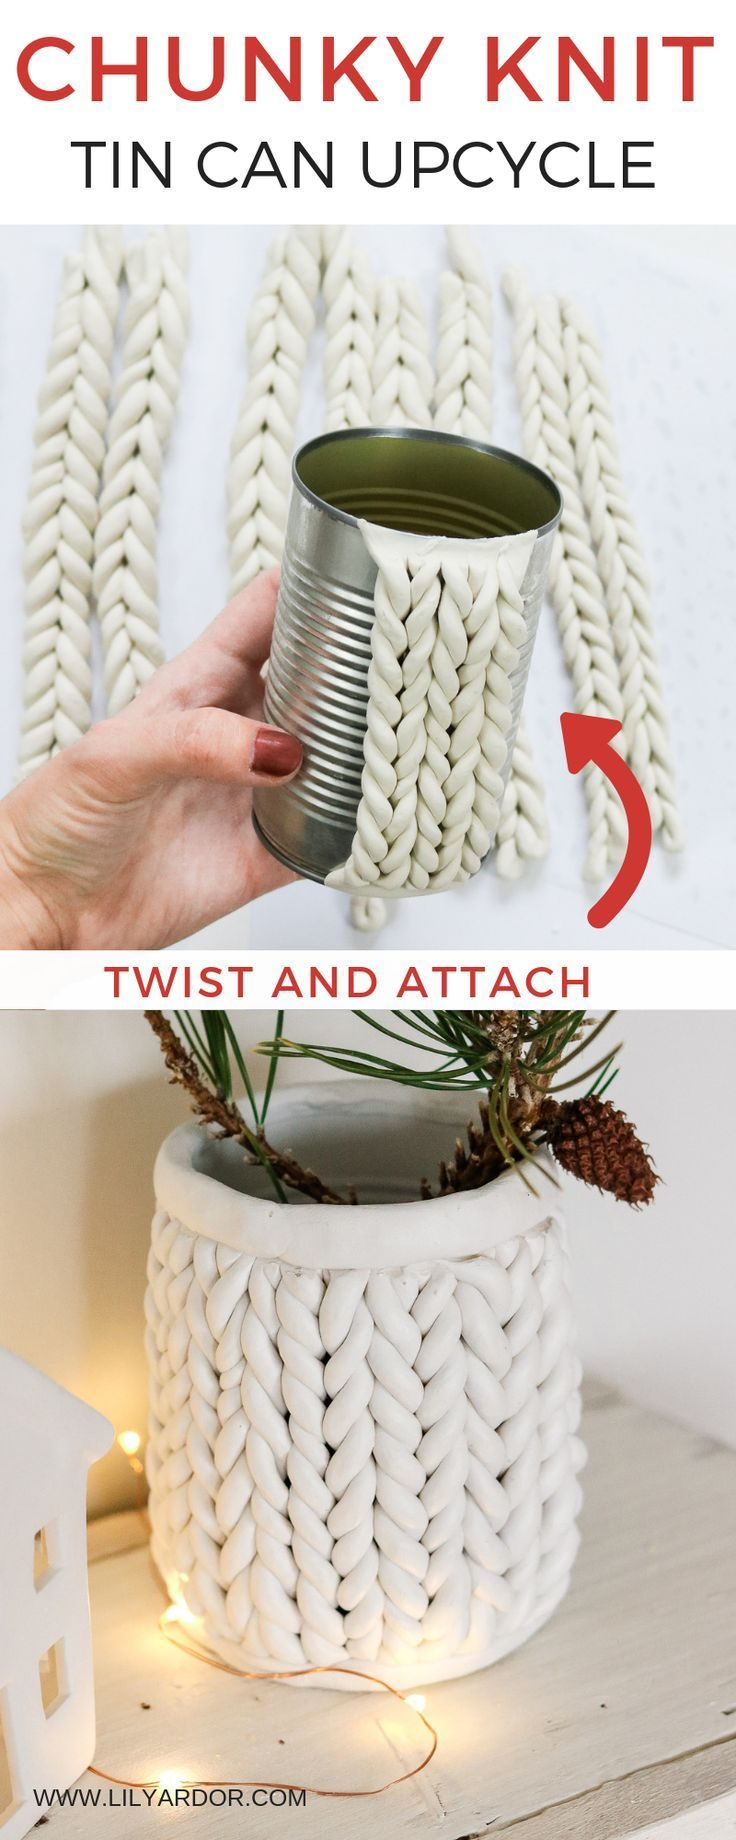 DIY Chunky knit using Clay – Chunky Knit Planter – Lily Ardor